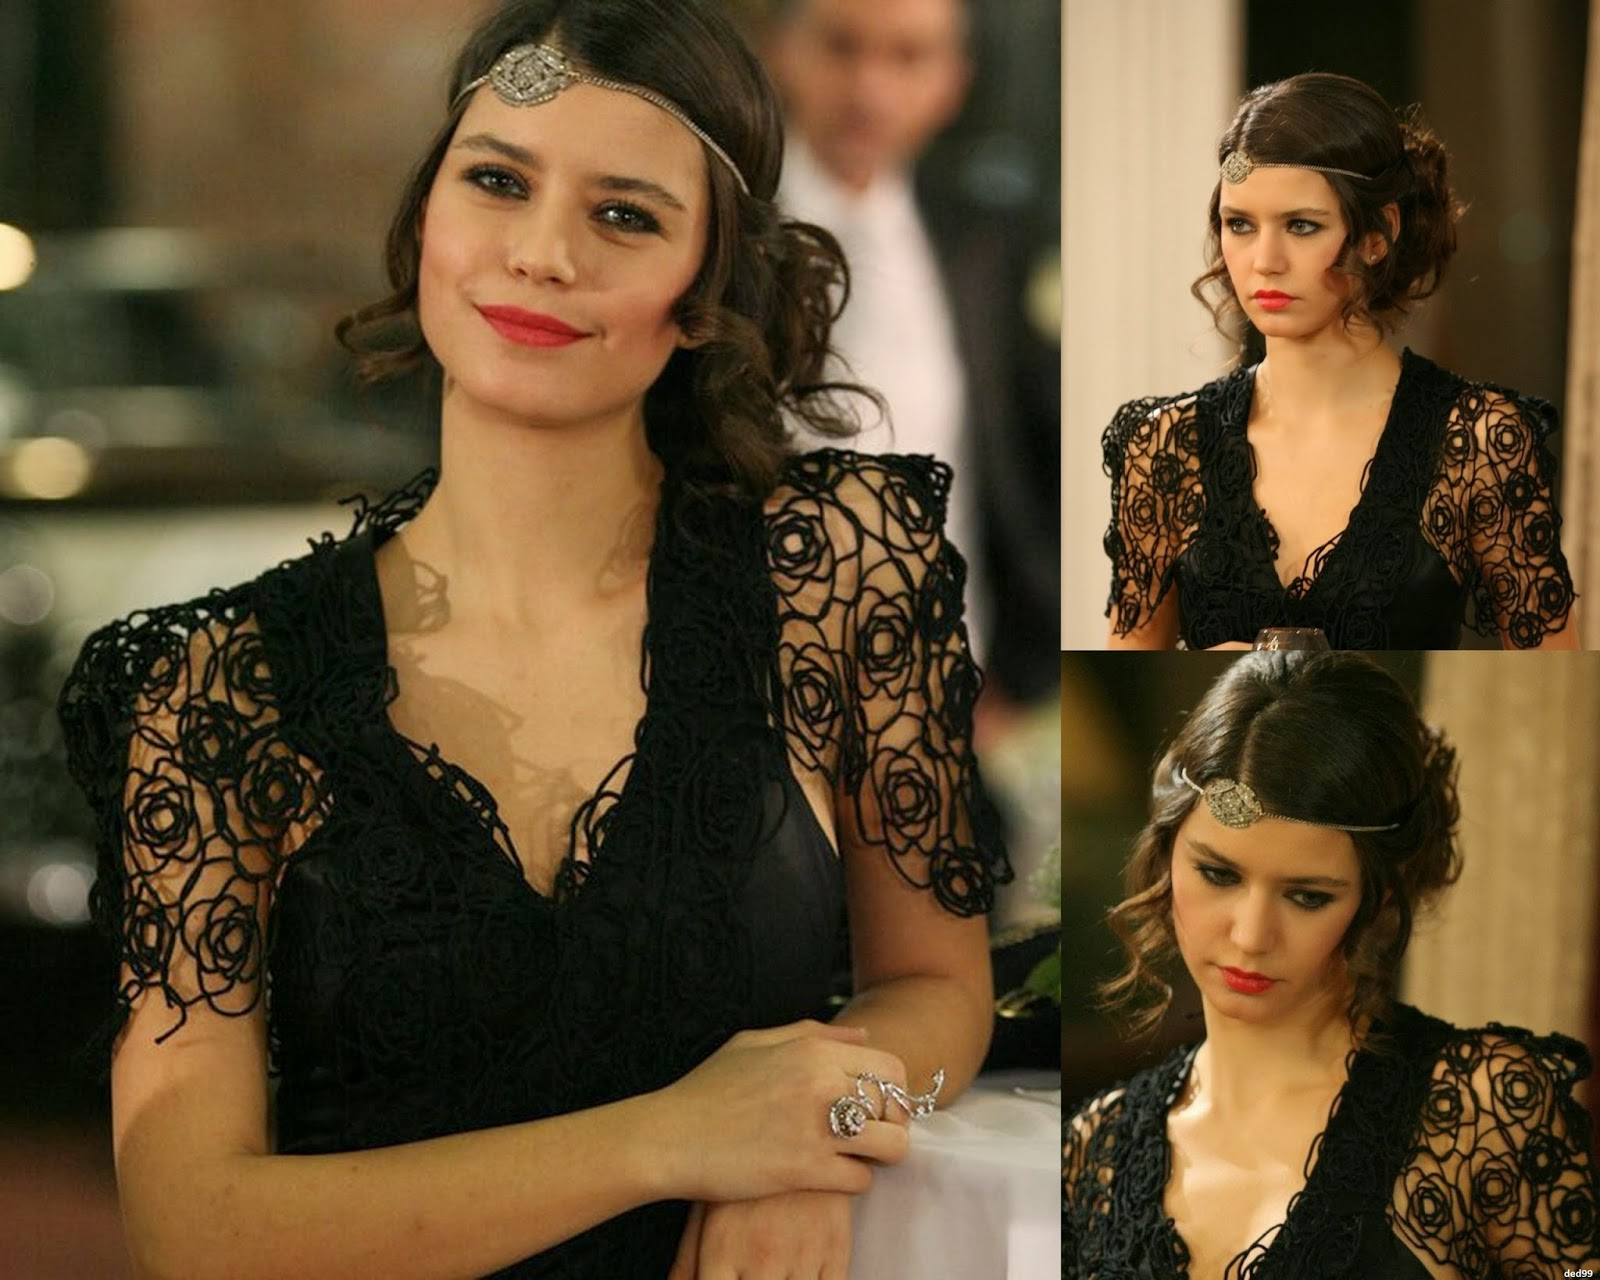 Ishq-e-Mamnoon actress Beren Saat to star in Netflix